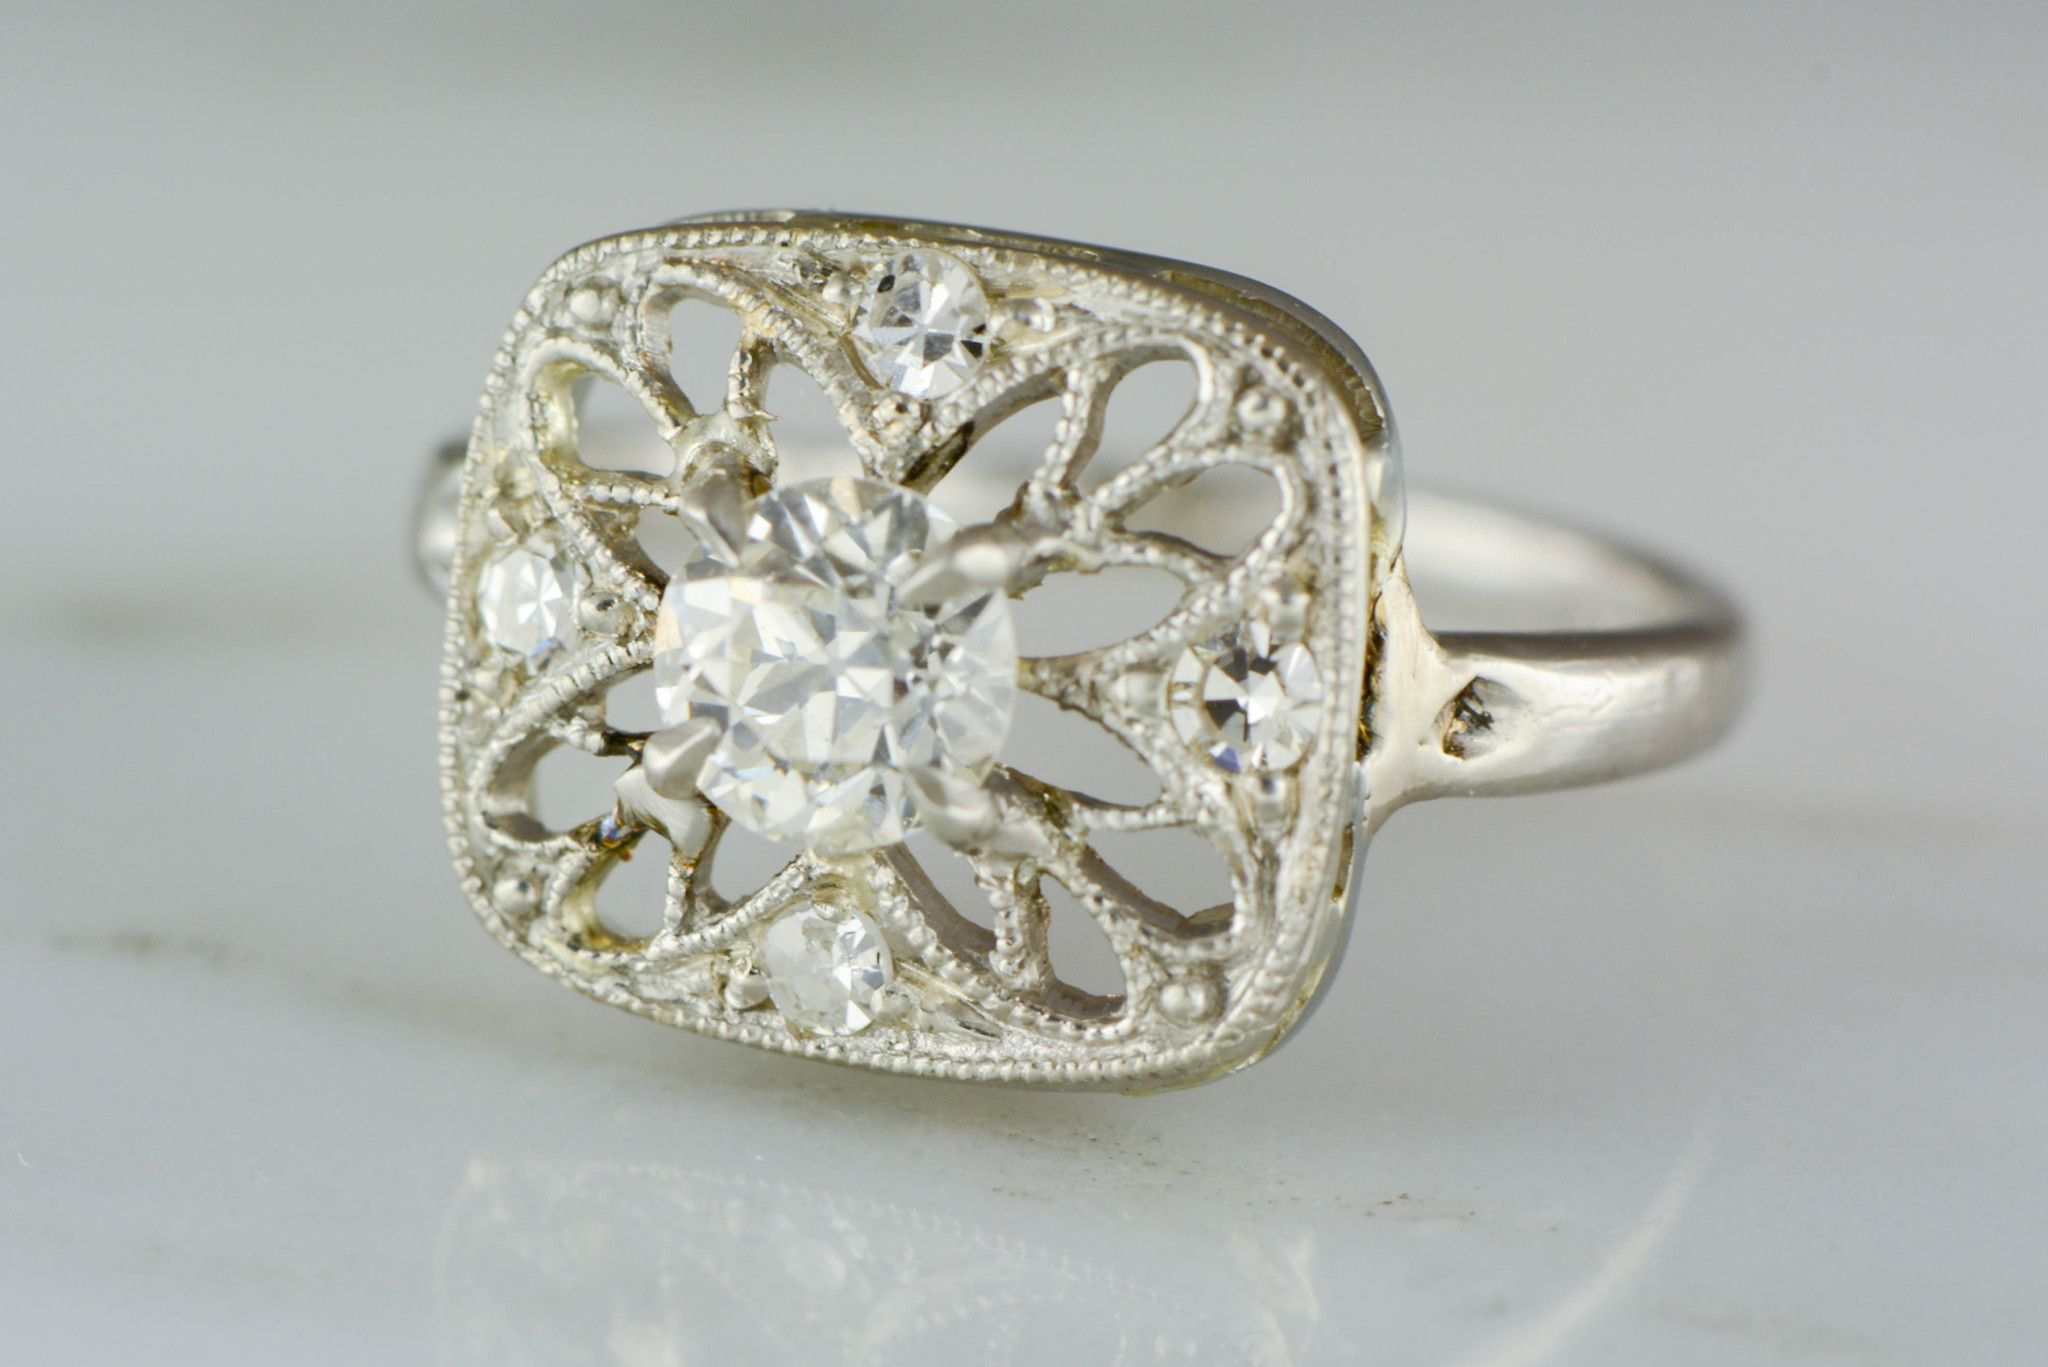 ltd page manor bloomsbury diamond logo engagement sold recently ring g rings soleste dragonfly collections